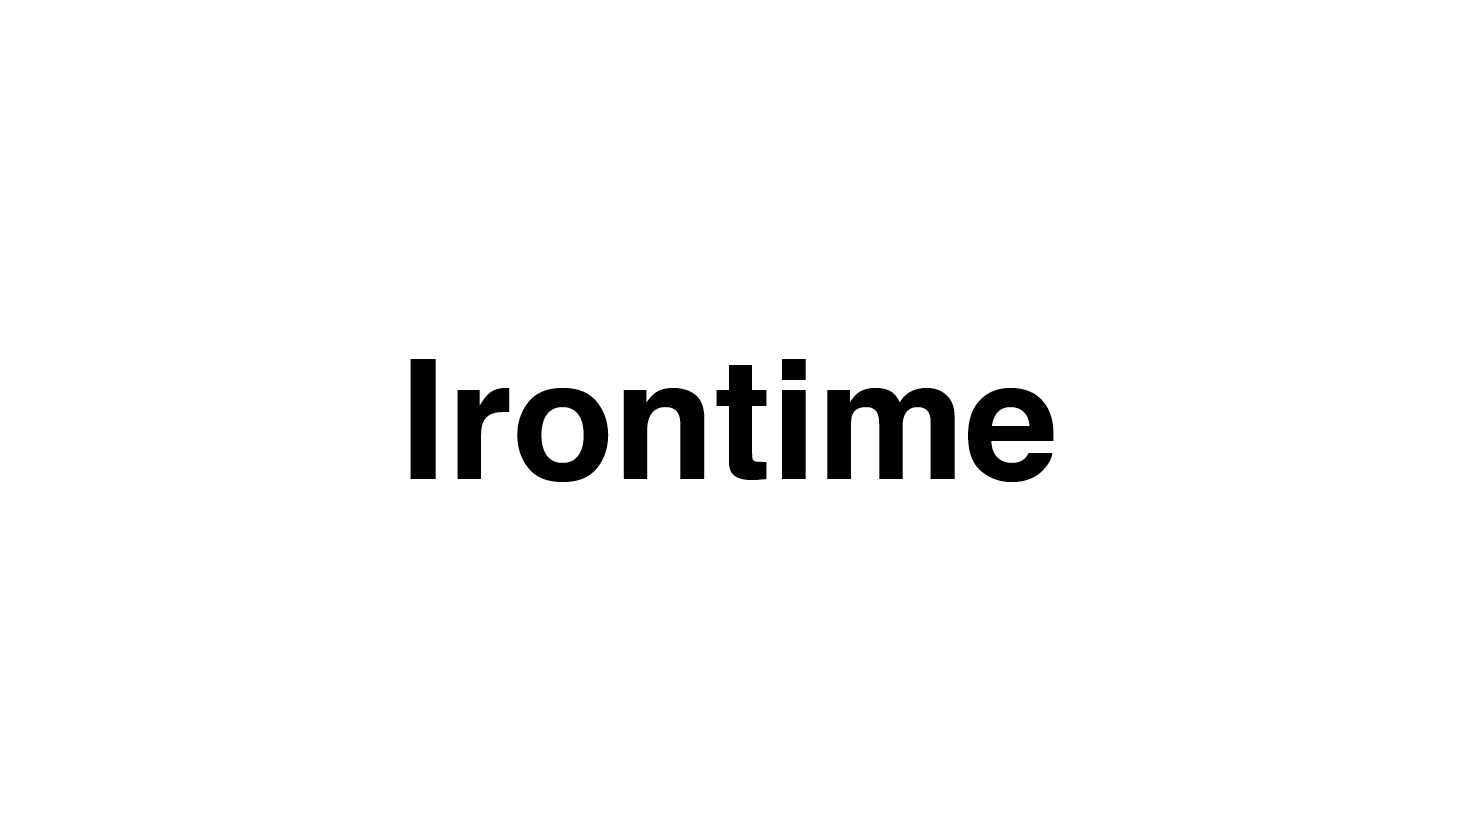 irontime